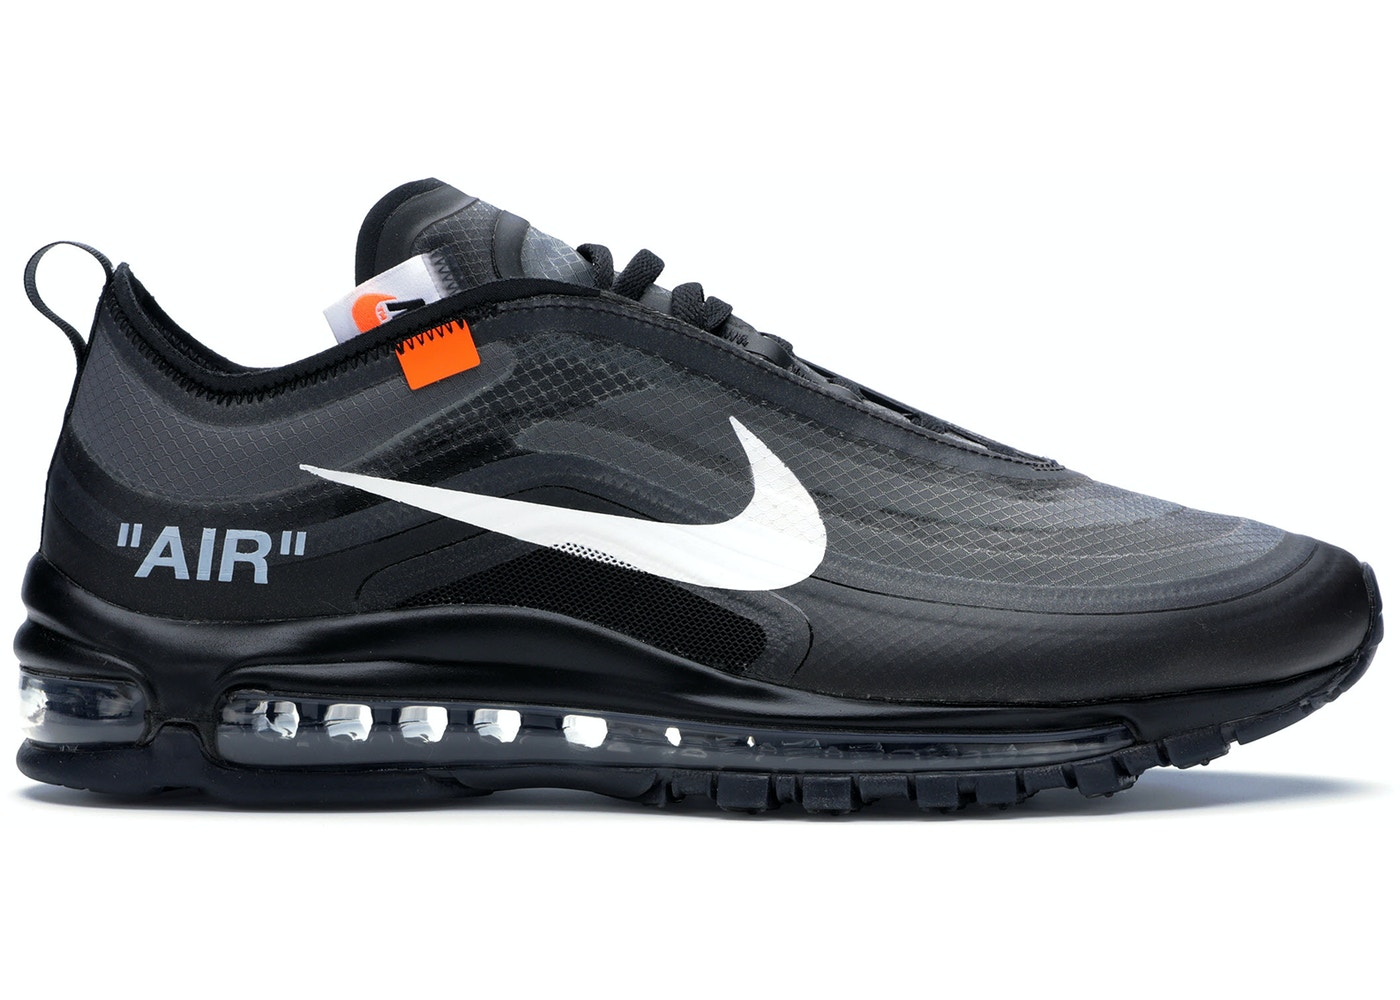 cheap authentic quality to buy Air Max 97 Off-White Black